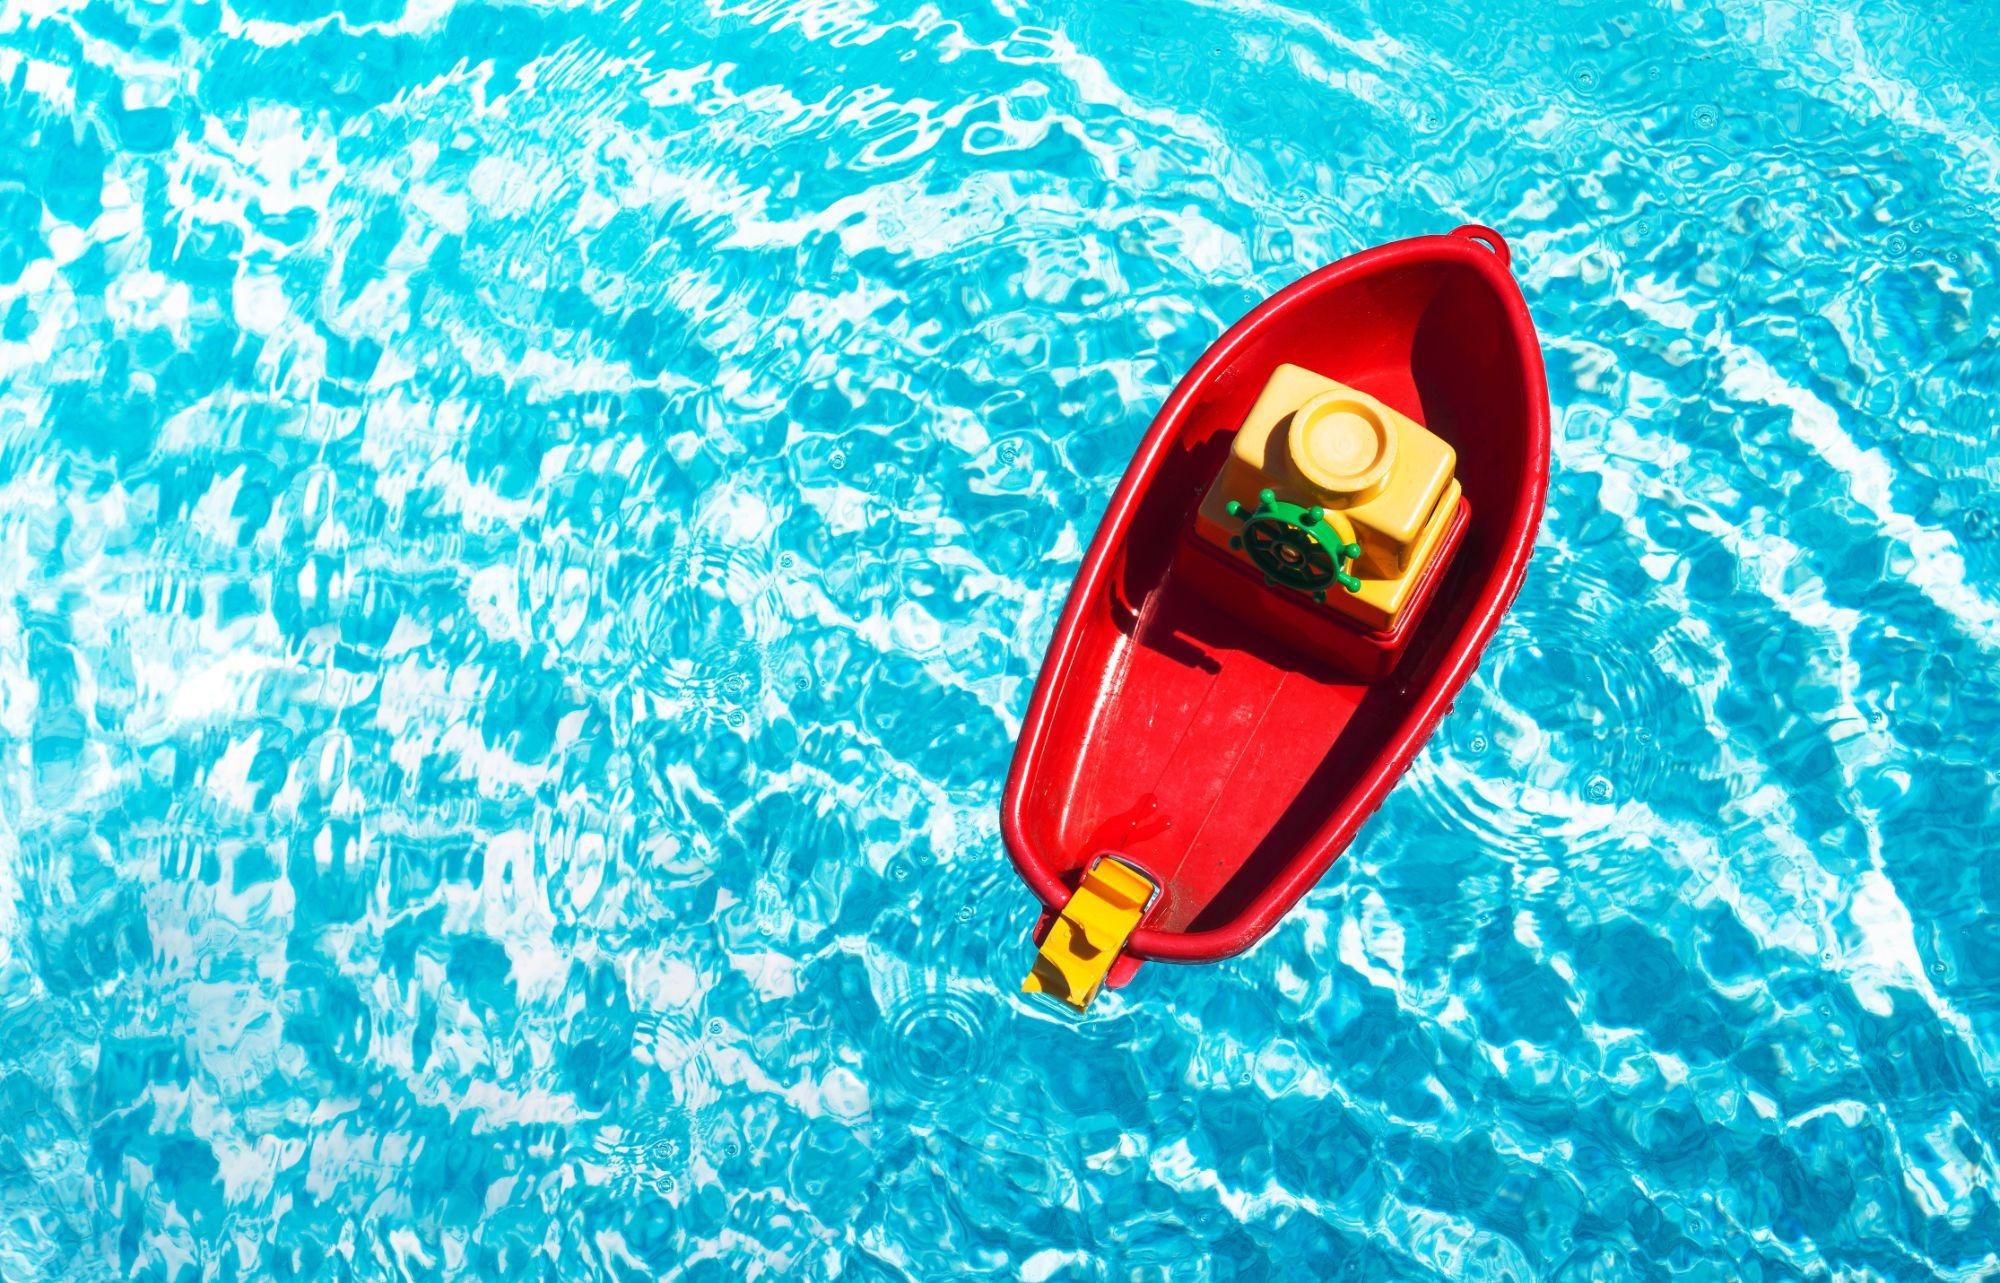 red-toy-boat-in-a-swimming-pool-1625476147.jpeg